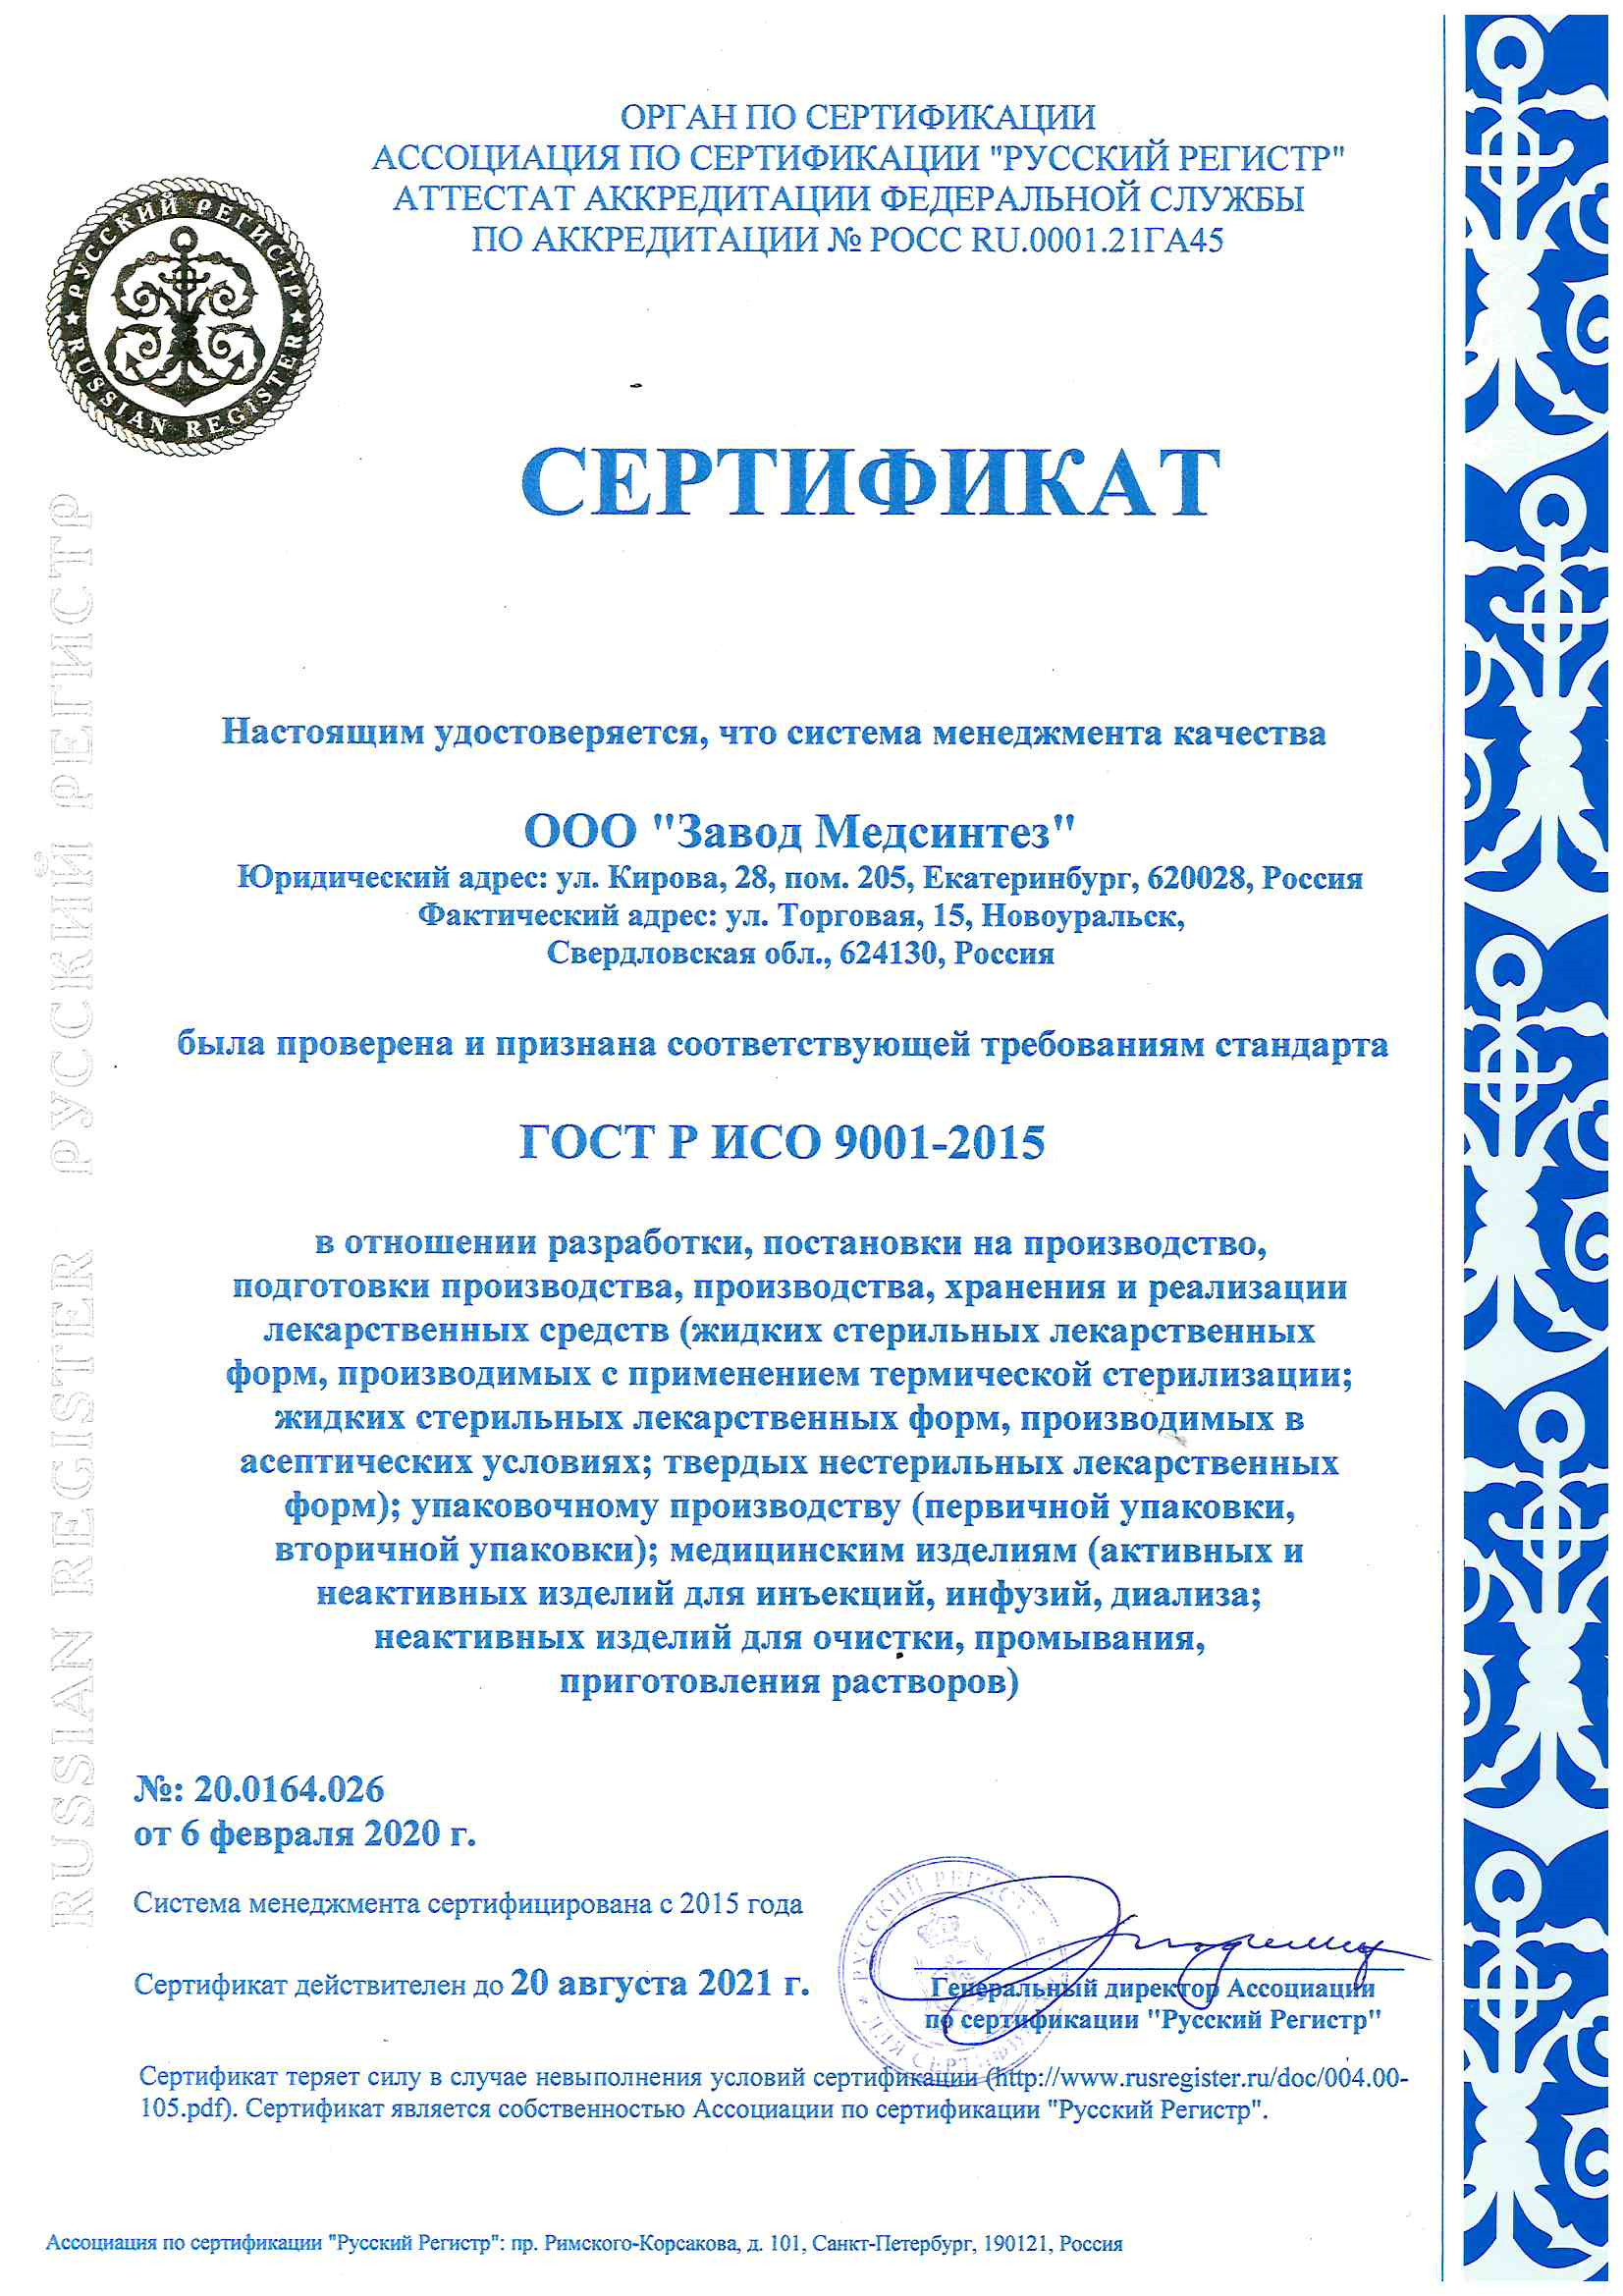 Certificate of compliance with the requirements of GOST R ISO 9001:2015 (ISO 9001:2015) issued by Russian Register Certification Association